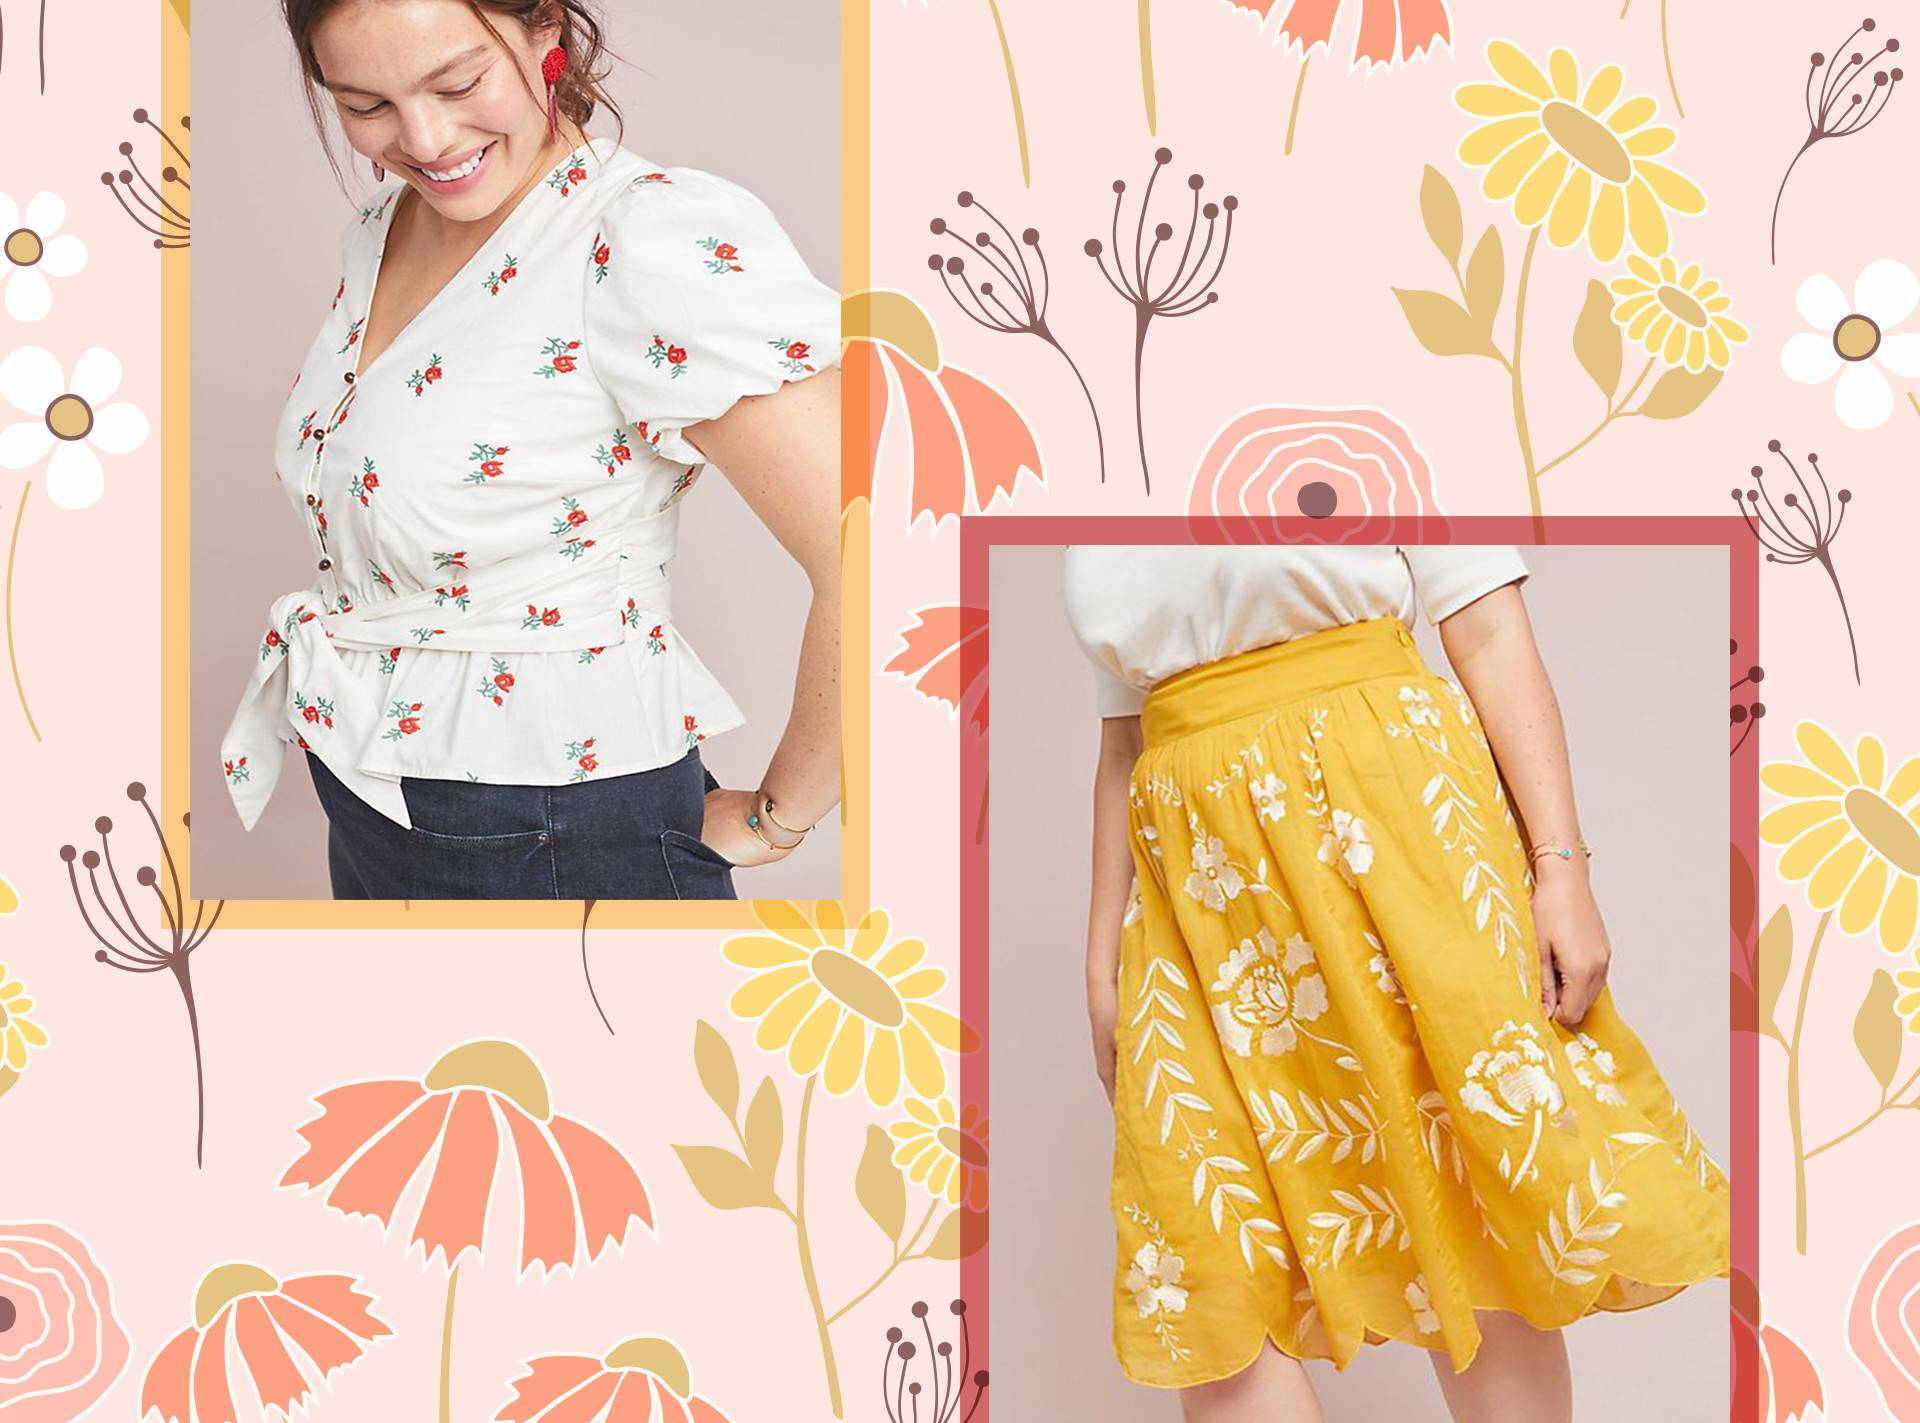 e3b543a901b Shop Our Favorites From Anthropologie s New Plus-Size Line - Bravo ...